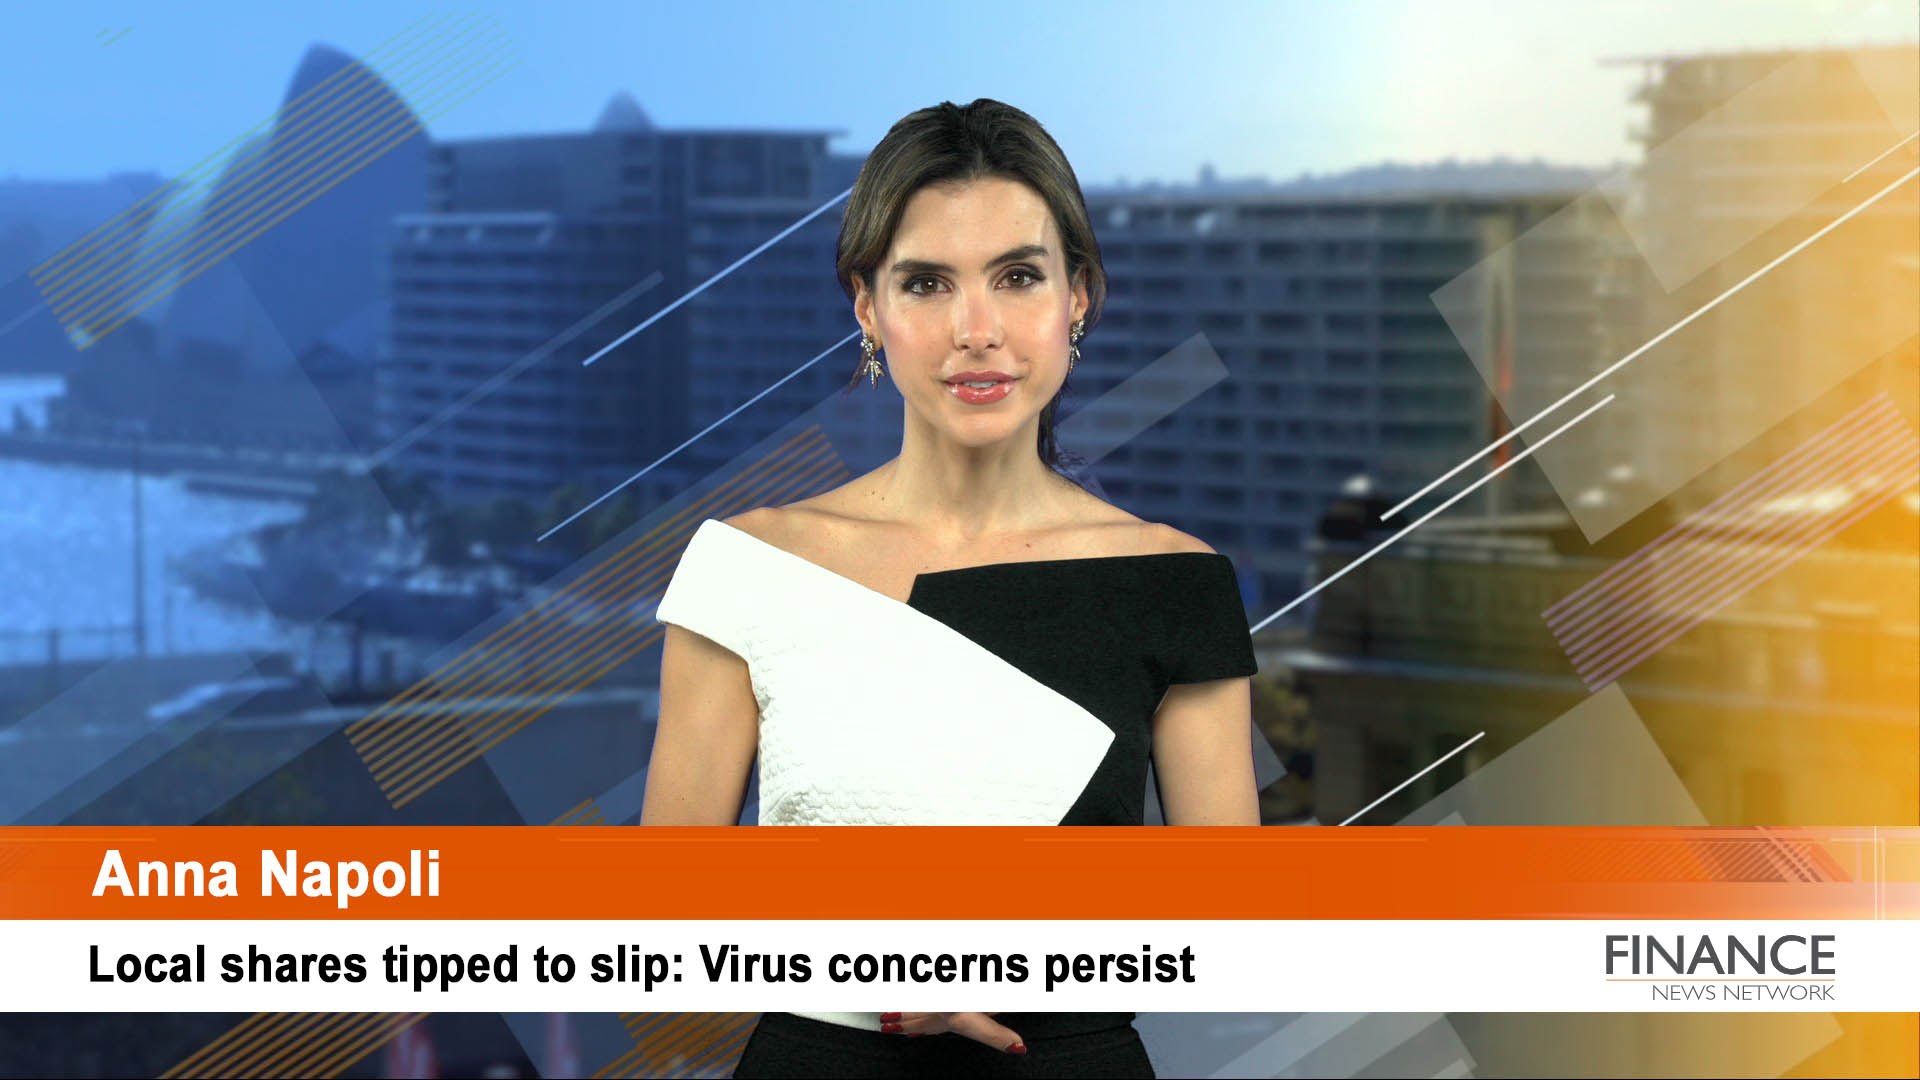 Local shares tipped to slip: Virus concerns persist